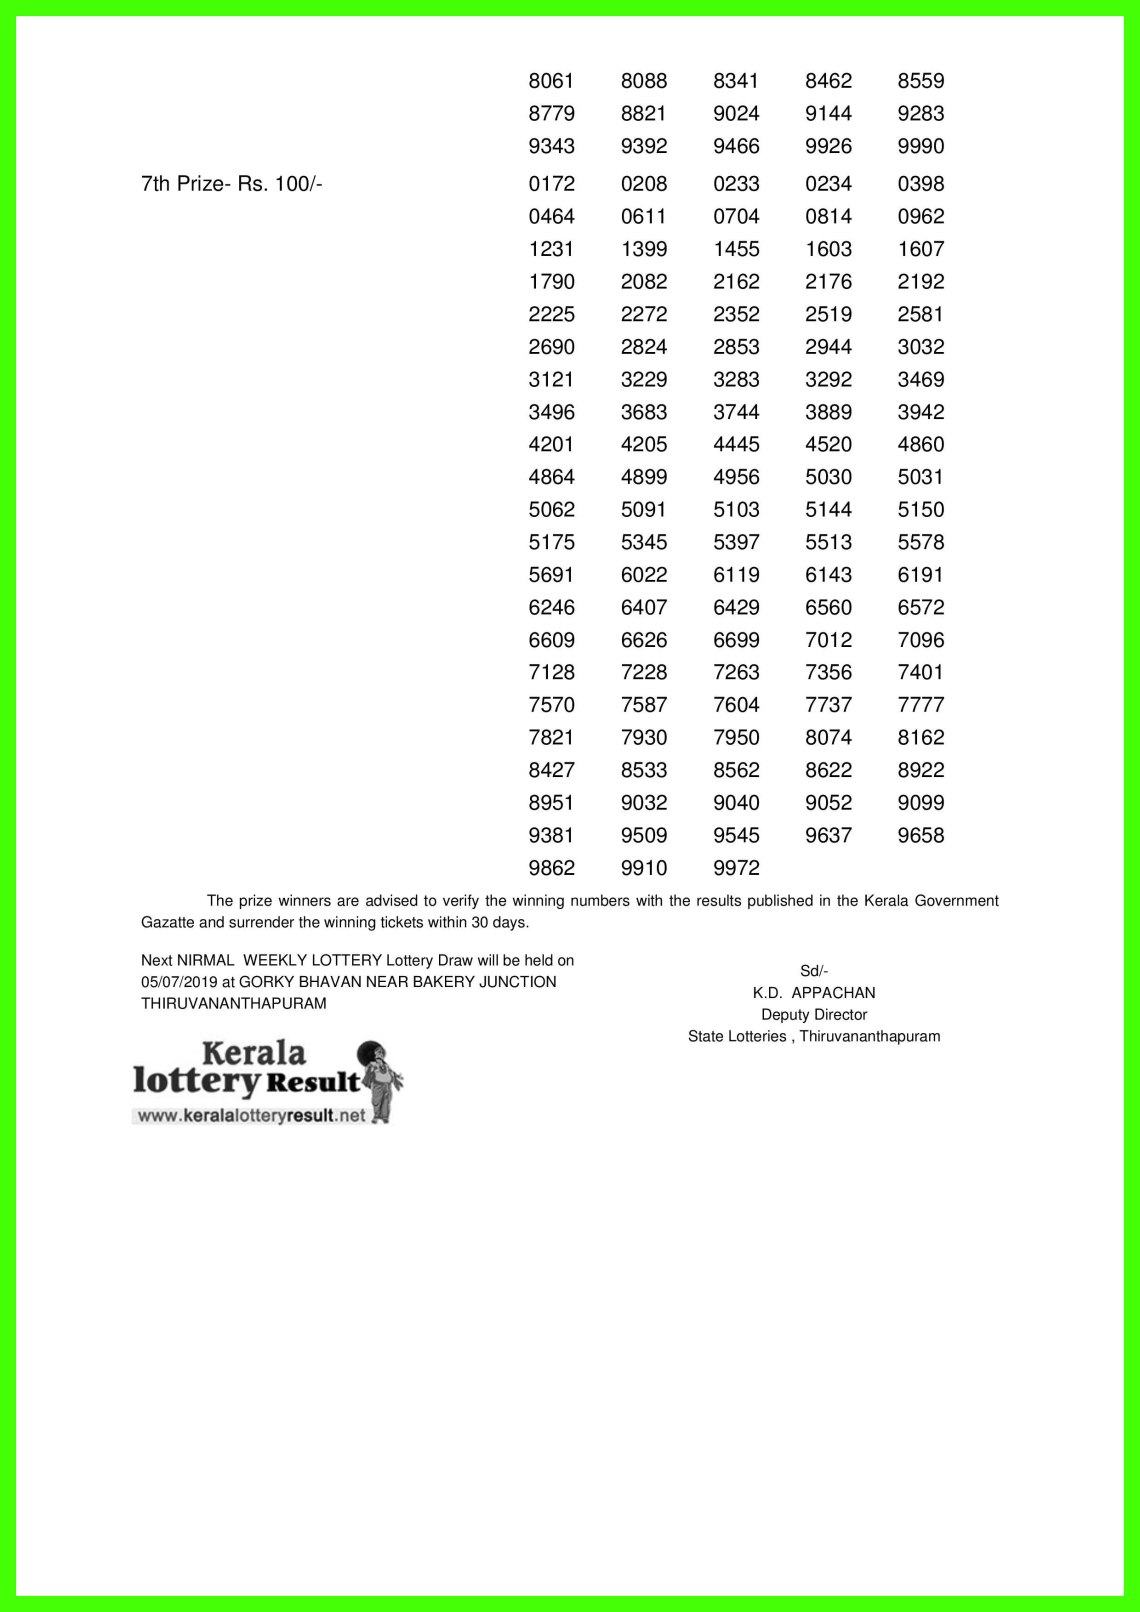 NIRMAL WEEKLY LOTTERY LOTTERY NO. NR-127th DRAW held on 28.06.2019-page-002